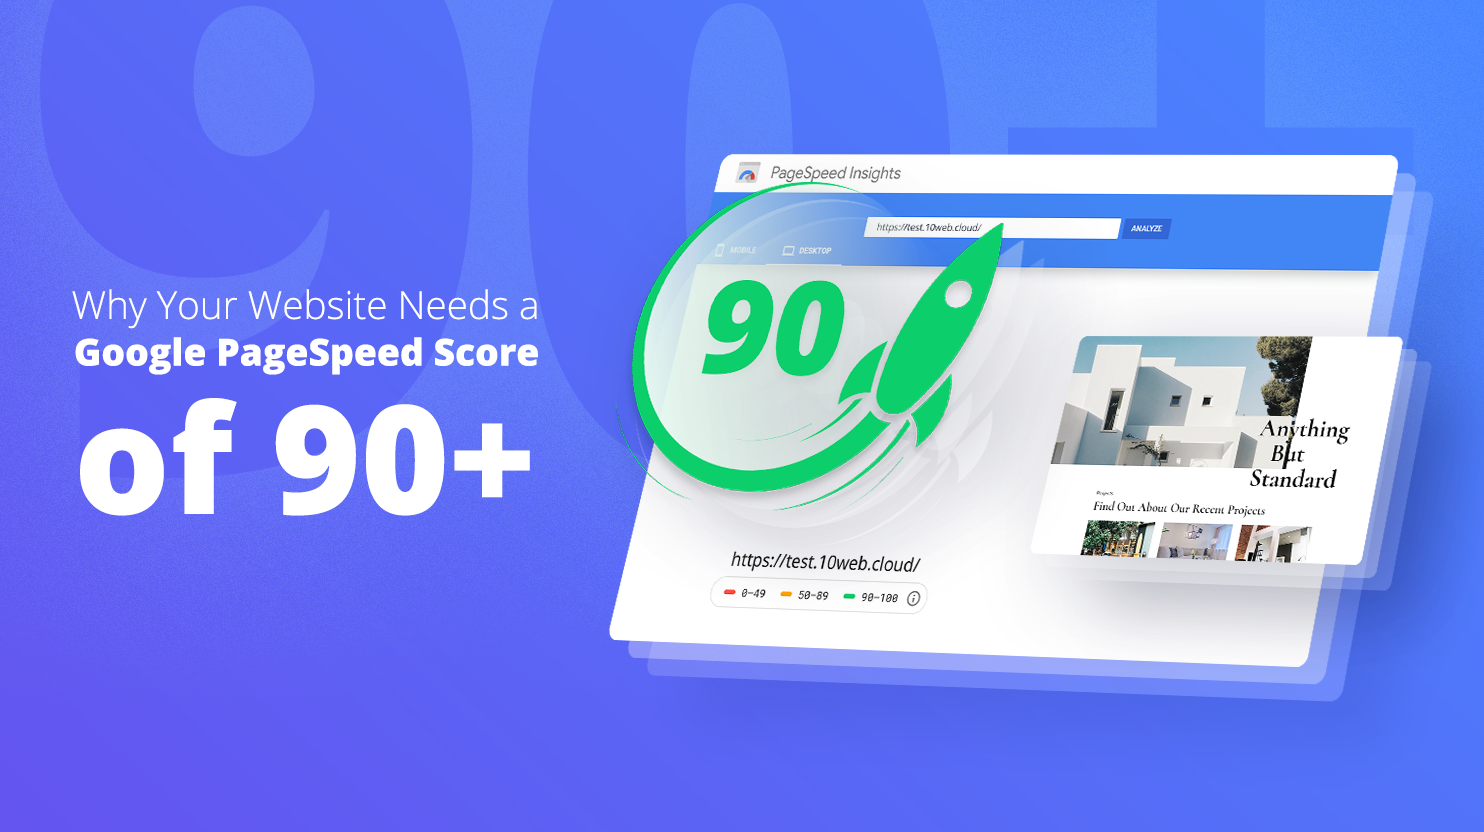 Website with a 90+ PageSpeed score